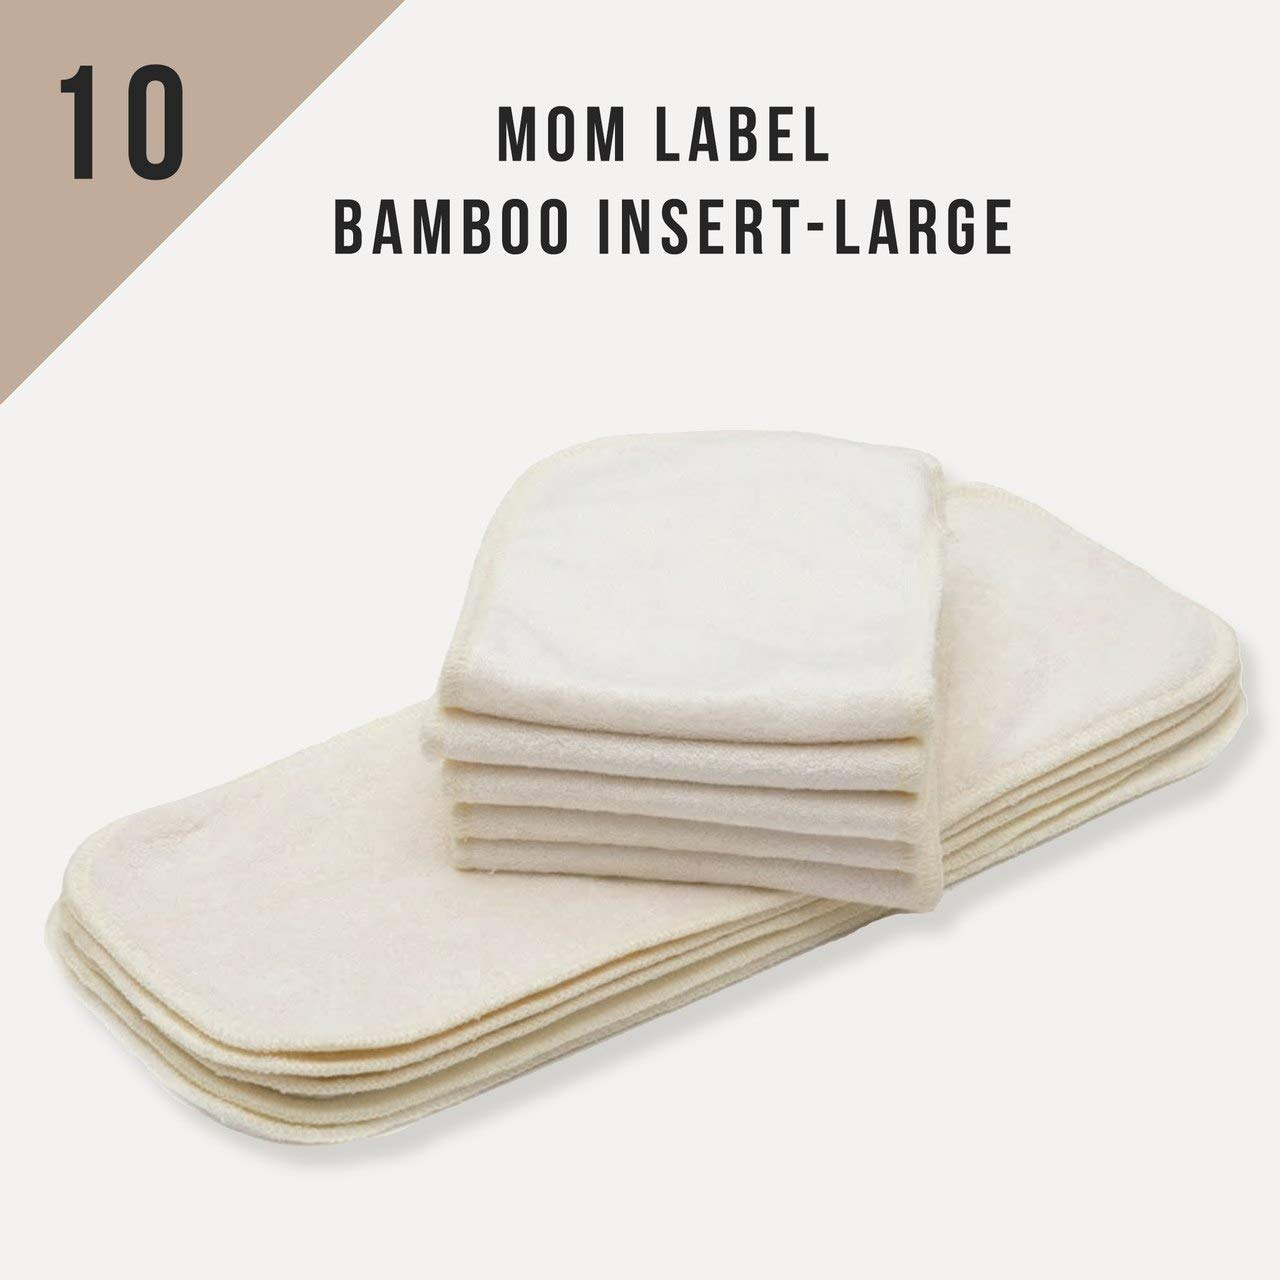 6 BABYGOAL 3-Layer Bamboo Cloth Diaper Inserts For Reusable Pocket Cloth Diaper